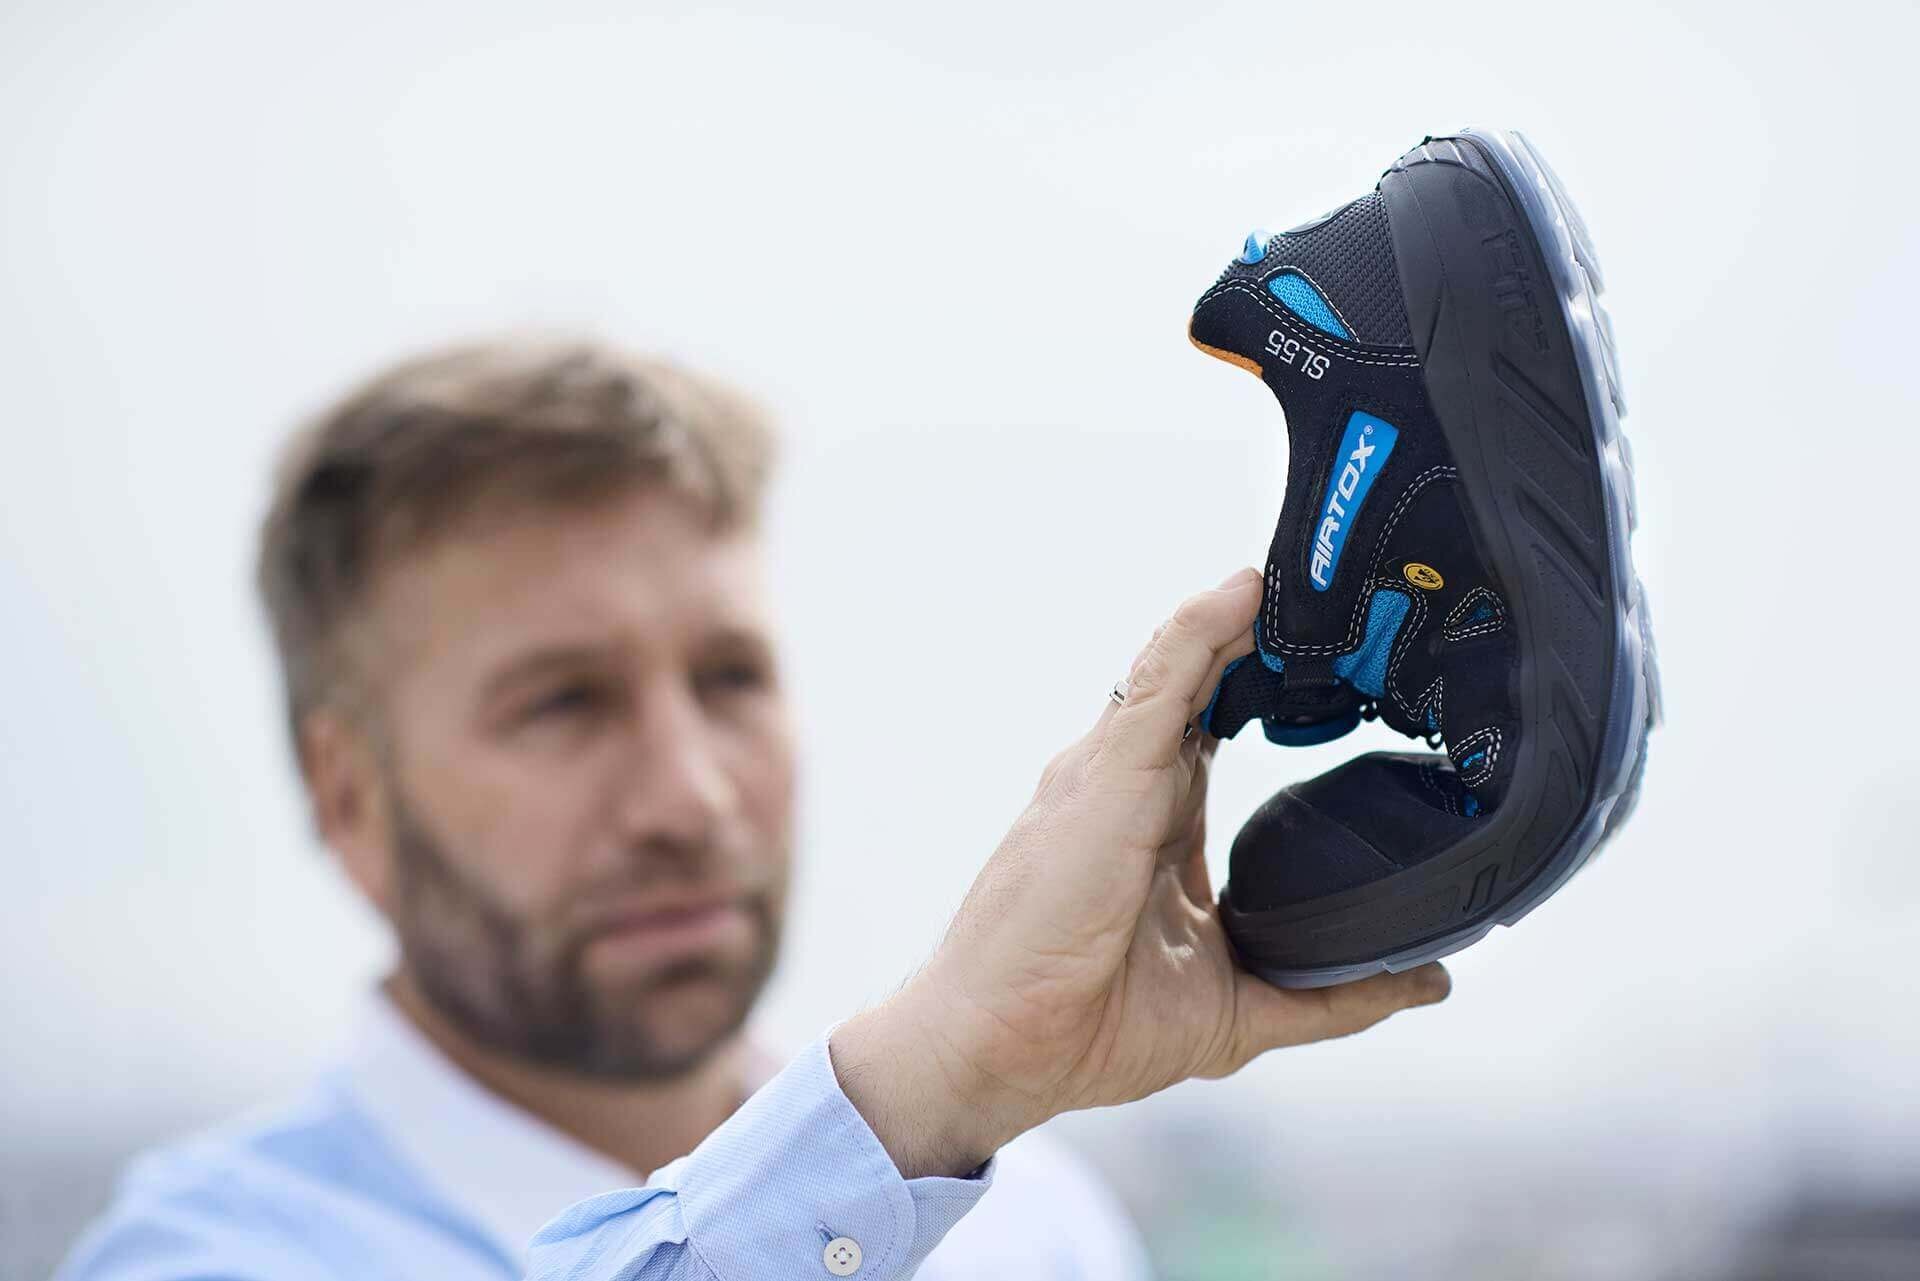 scarpe antinfortunistiche Airtox - design